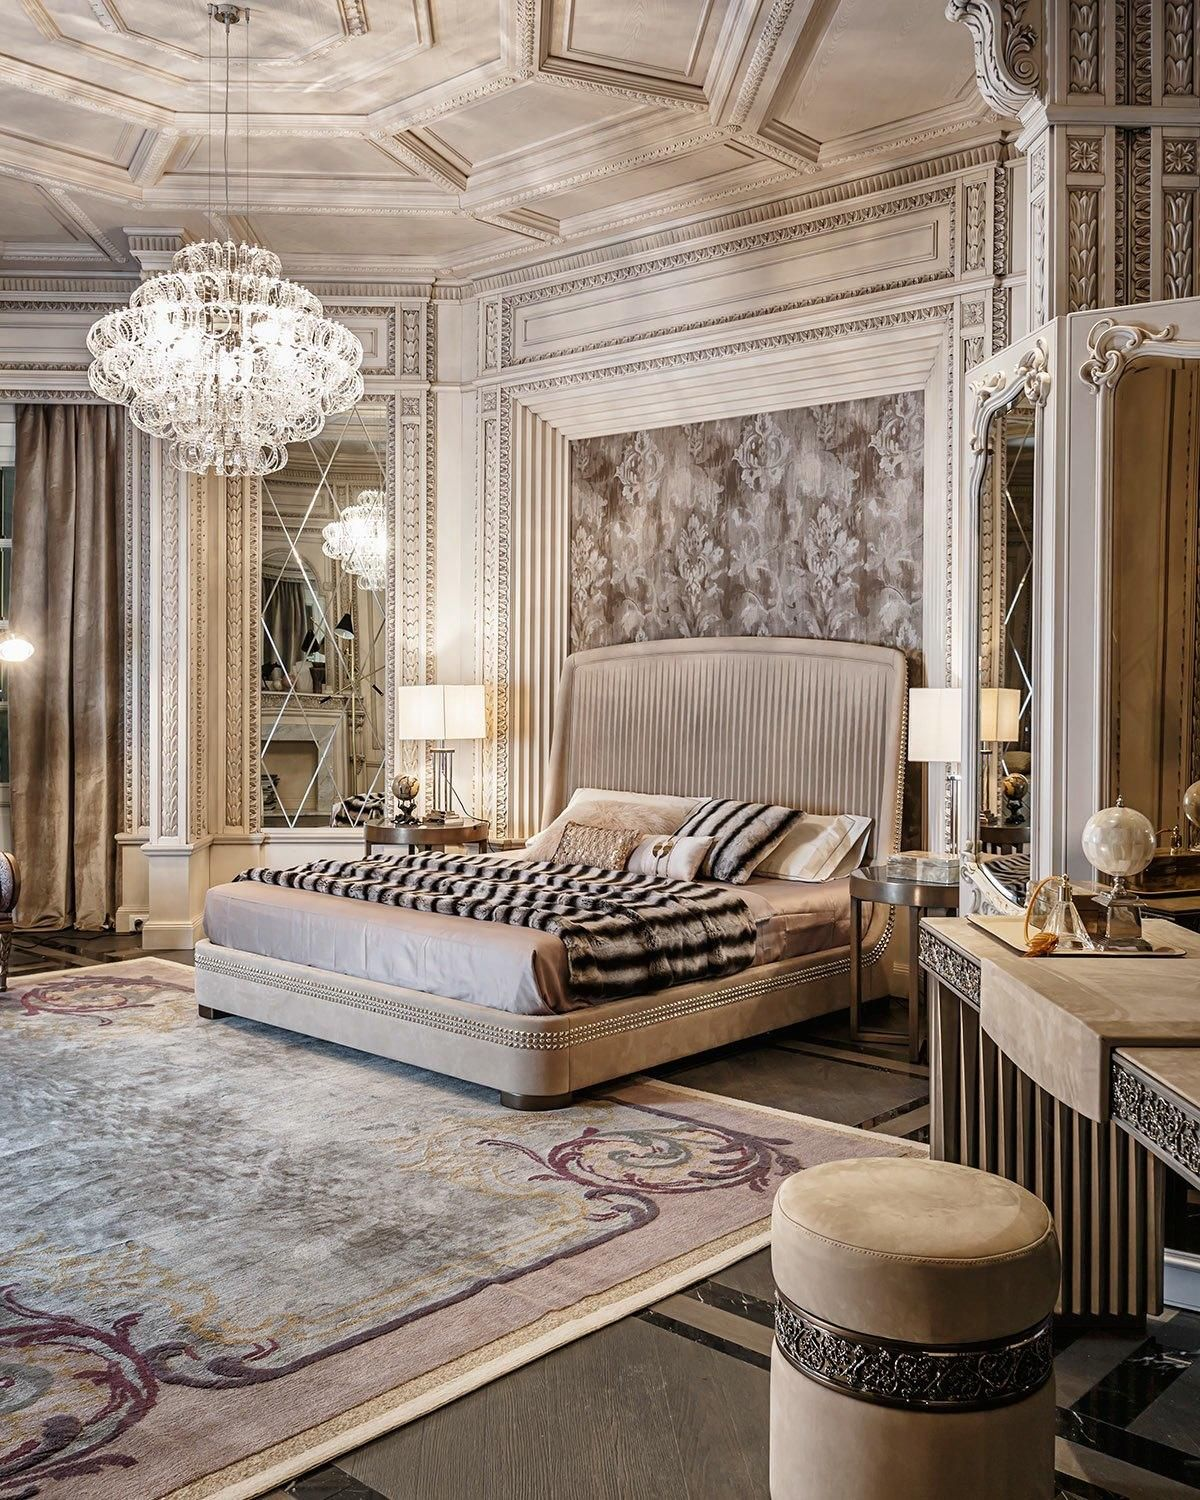 Neoclassical Interior Design Neoclassical And Art Deco Features In Two Luxurious